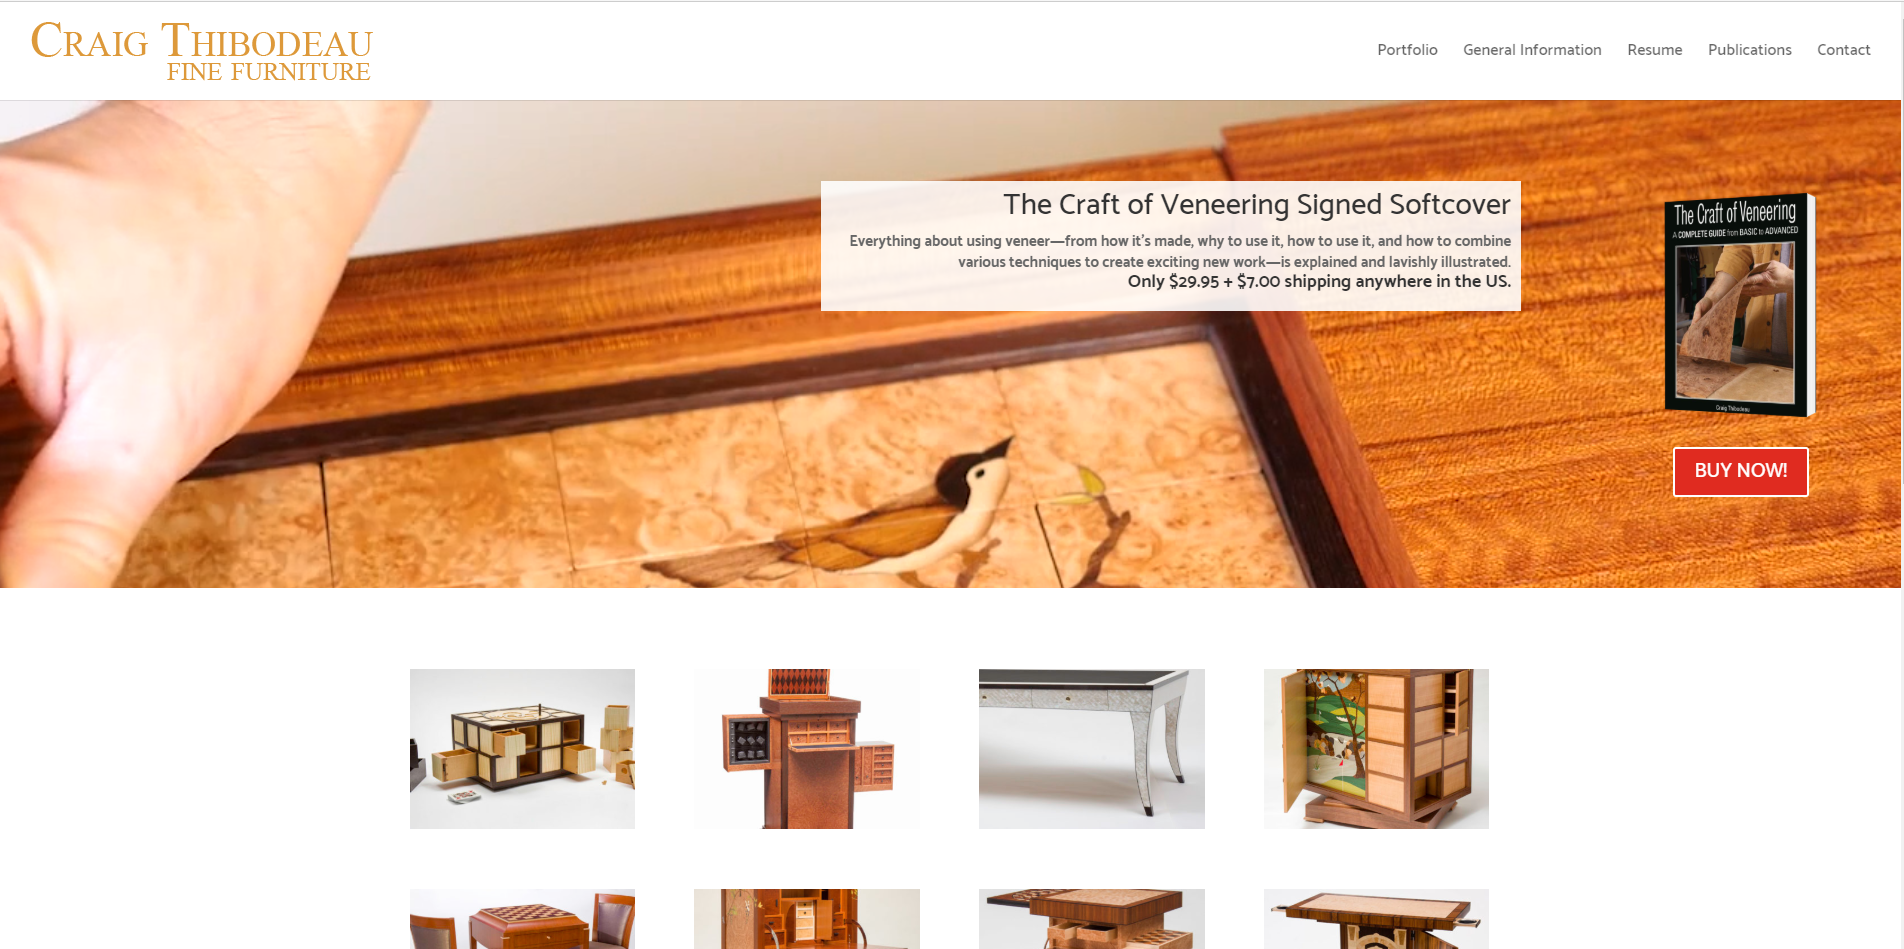 Craig Thibodeau Maker of handmade furniture, marquetry and puzzle/mechanical furniture.